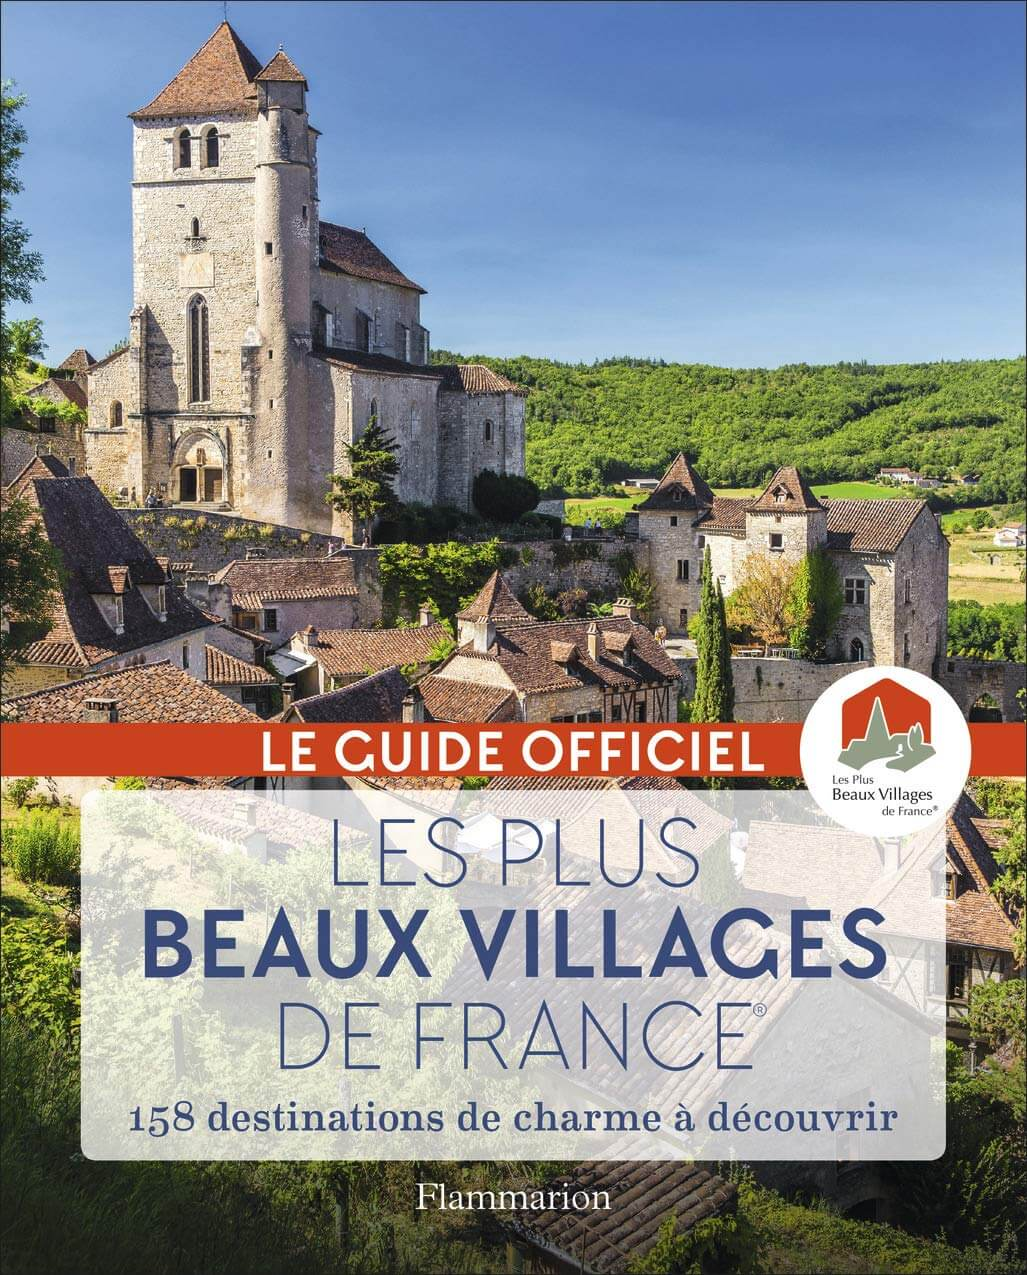 Les villages les plus beaux de France en 2019 - Carte